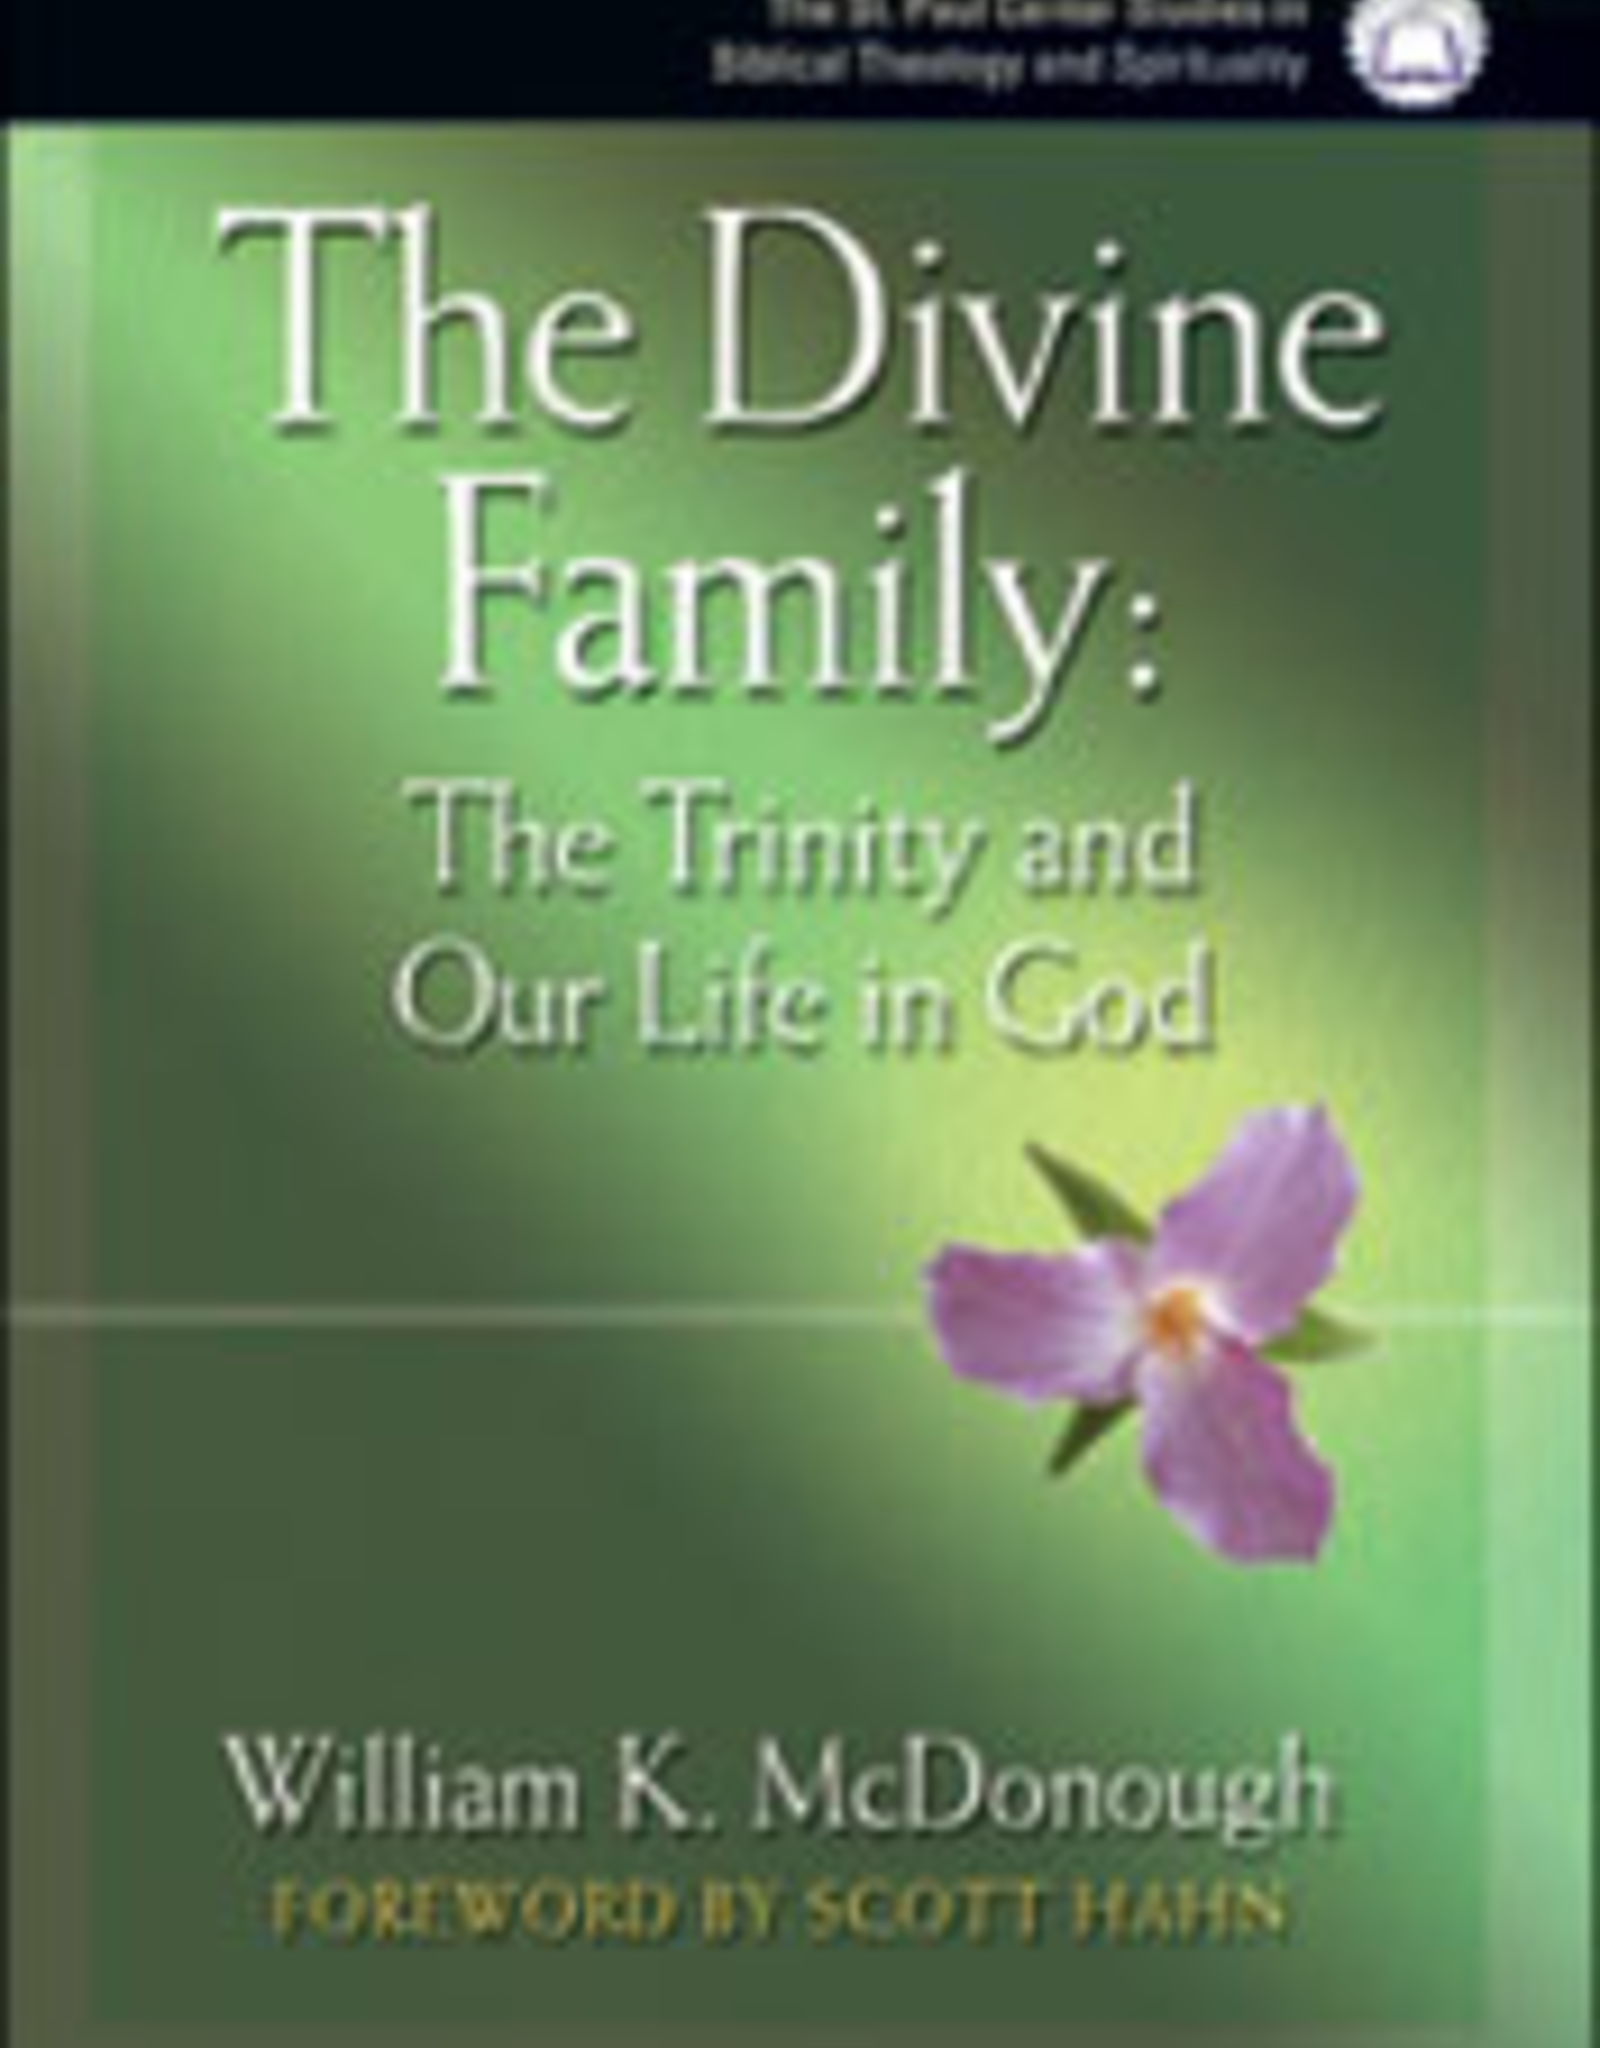 Franciscan Media The Divine Family:  The Trinity and Our Life in God, by William K. McDonough (paperback)